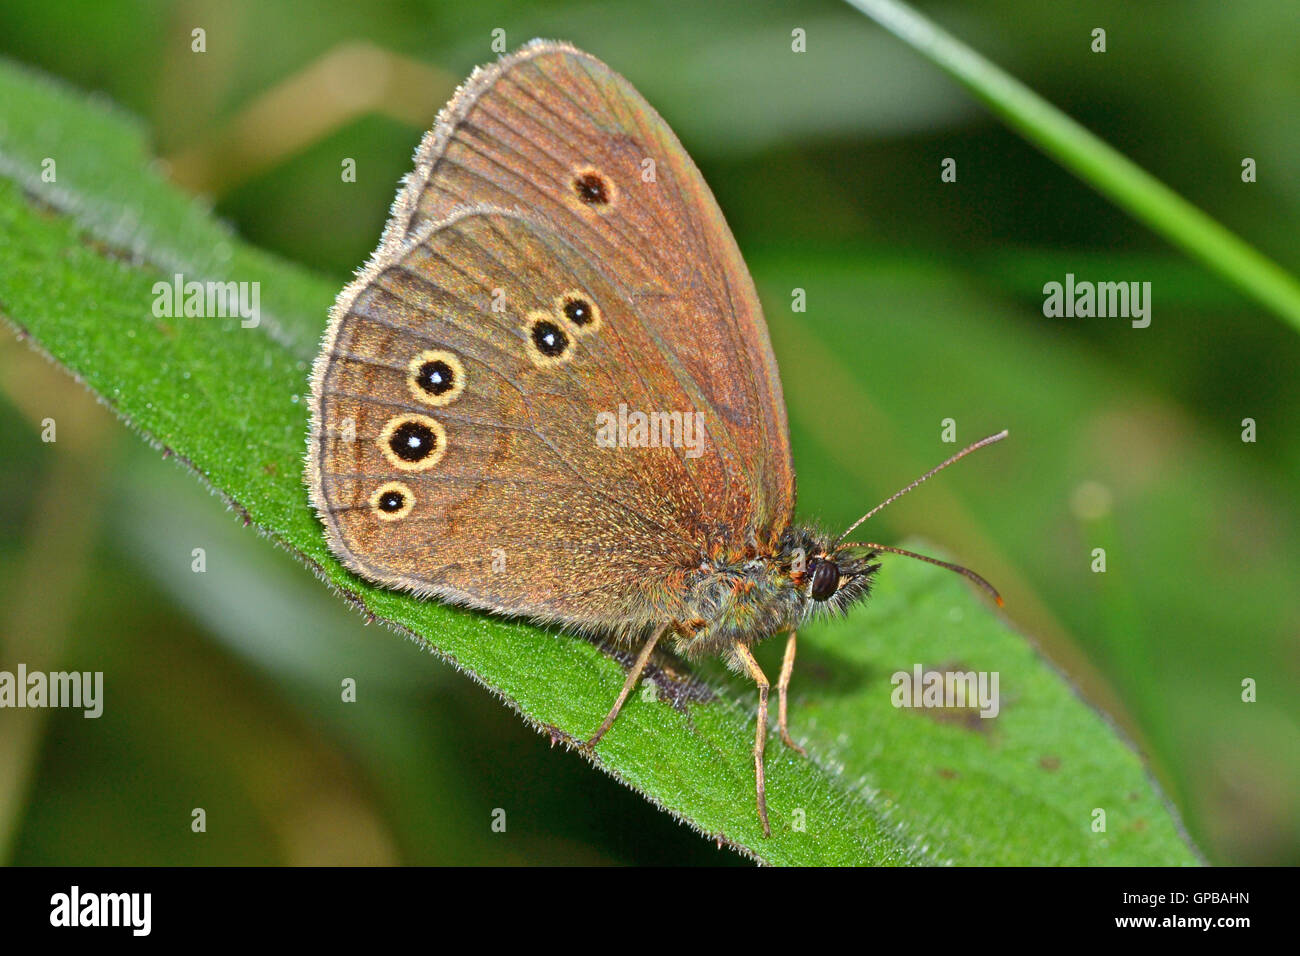 Ringlet butterfly, Aphantopus hyperantus, in a Cheshire meadow, England. Out in July in damp meadows. - Stock Image